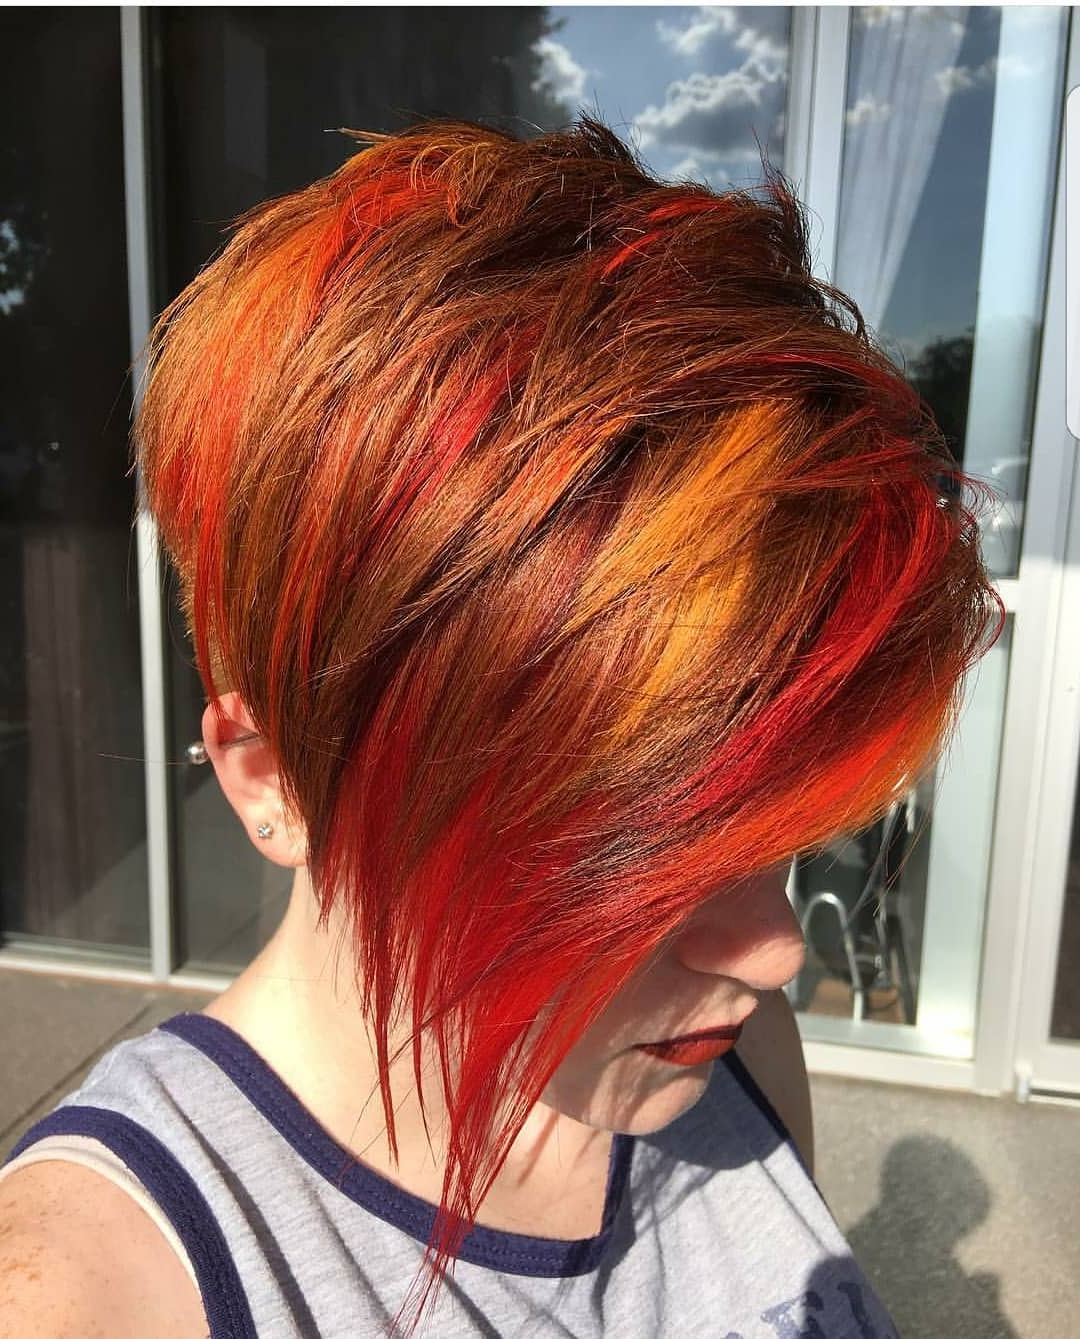 10 Beautiful Asymmetrical Short Pixie Haircuts In 2018 Razor Cut Pink Pixie Hairstyles With Edgy Undercut (View 8 of 20)